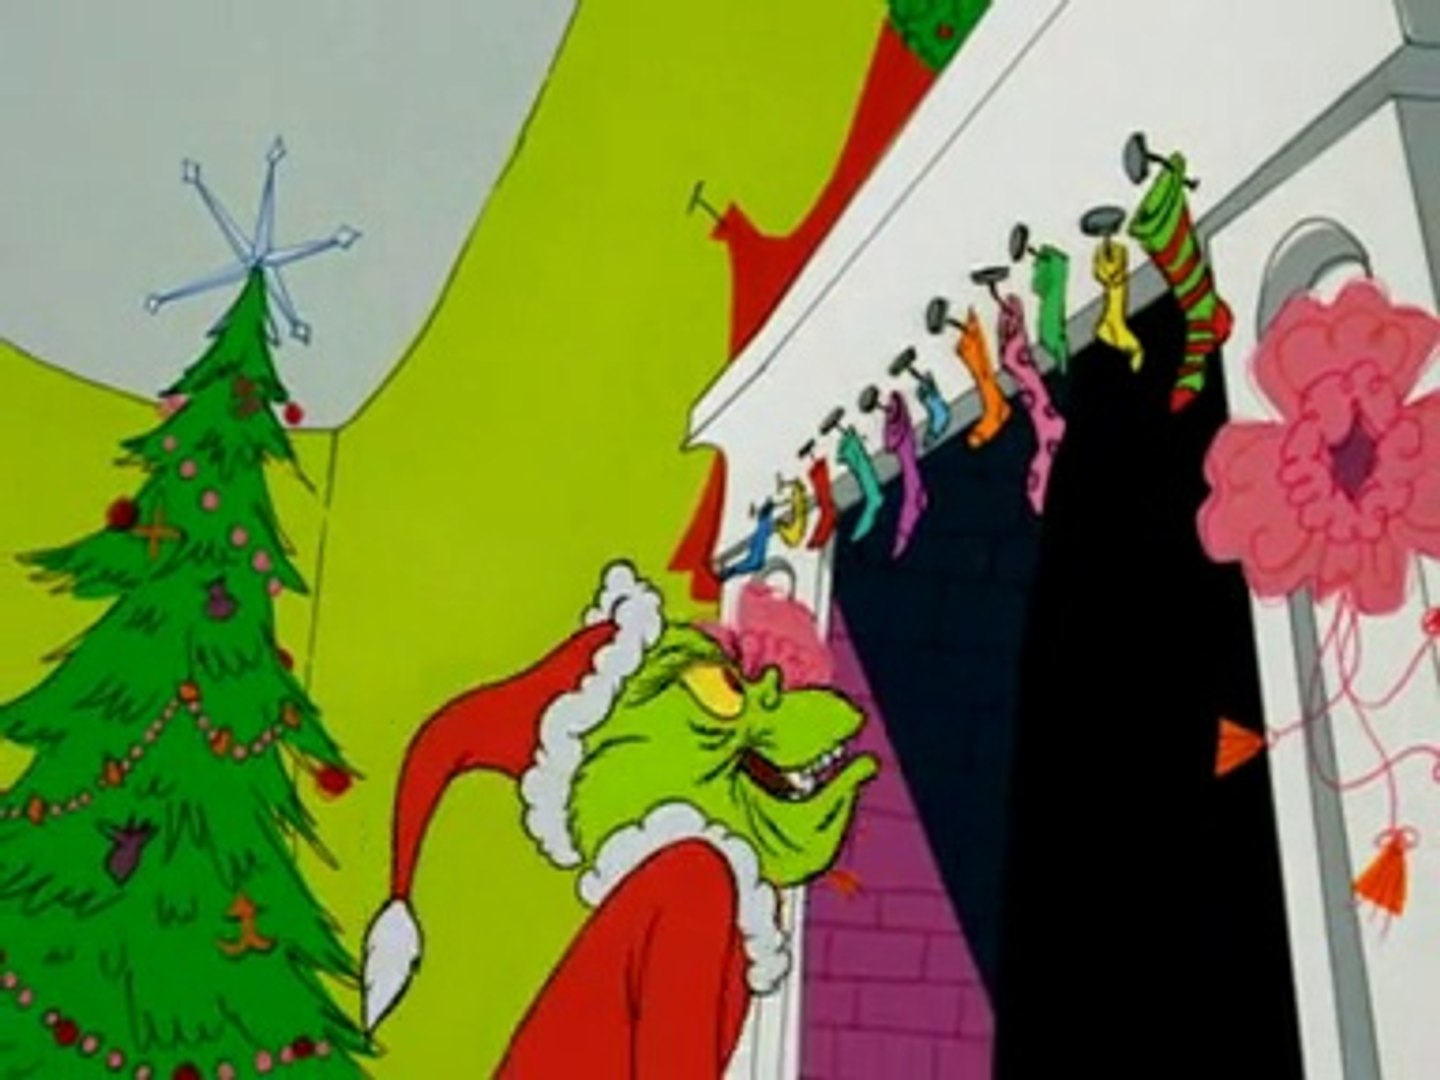 The Grinch Who Stole Christmas Cartoon.Dr Seuss How The Grinch Stole Christmas